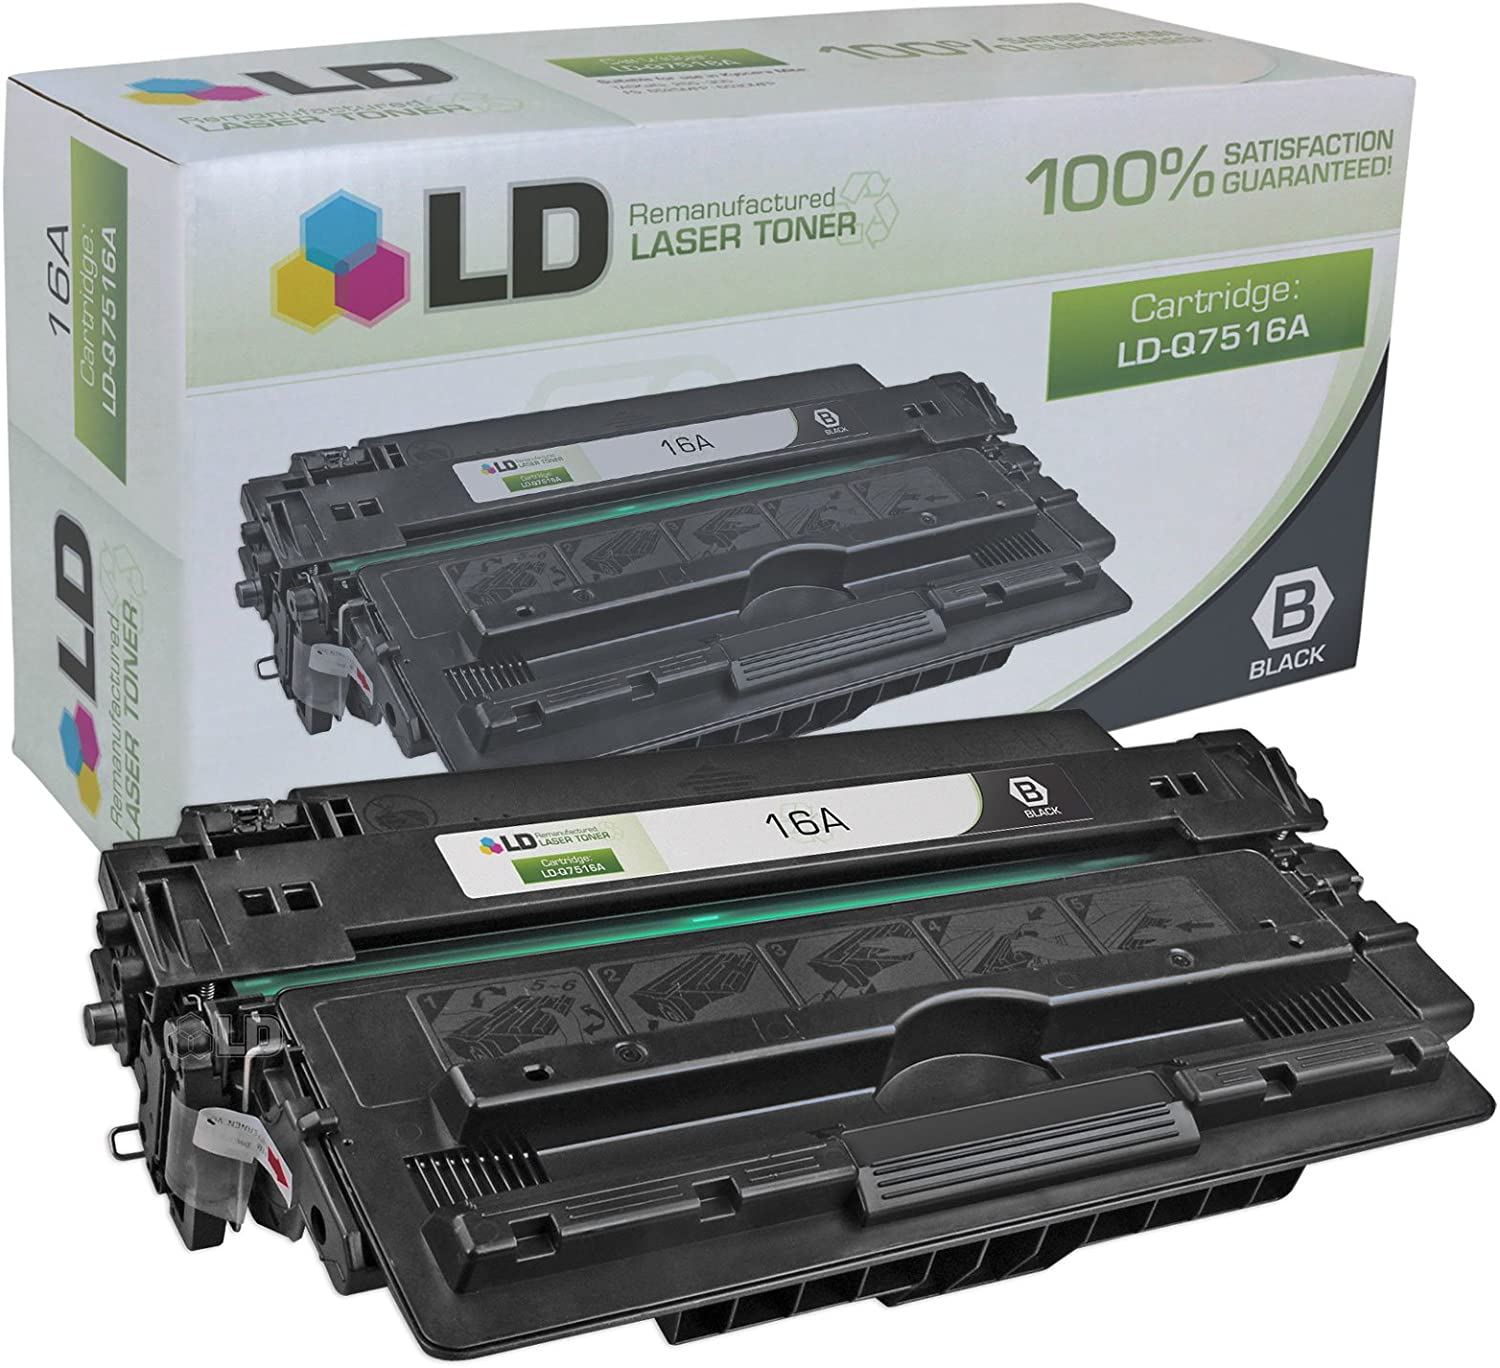 LD Remanufactured Toner Cartridge Replacement for HP 16A Q7516A (Black)